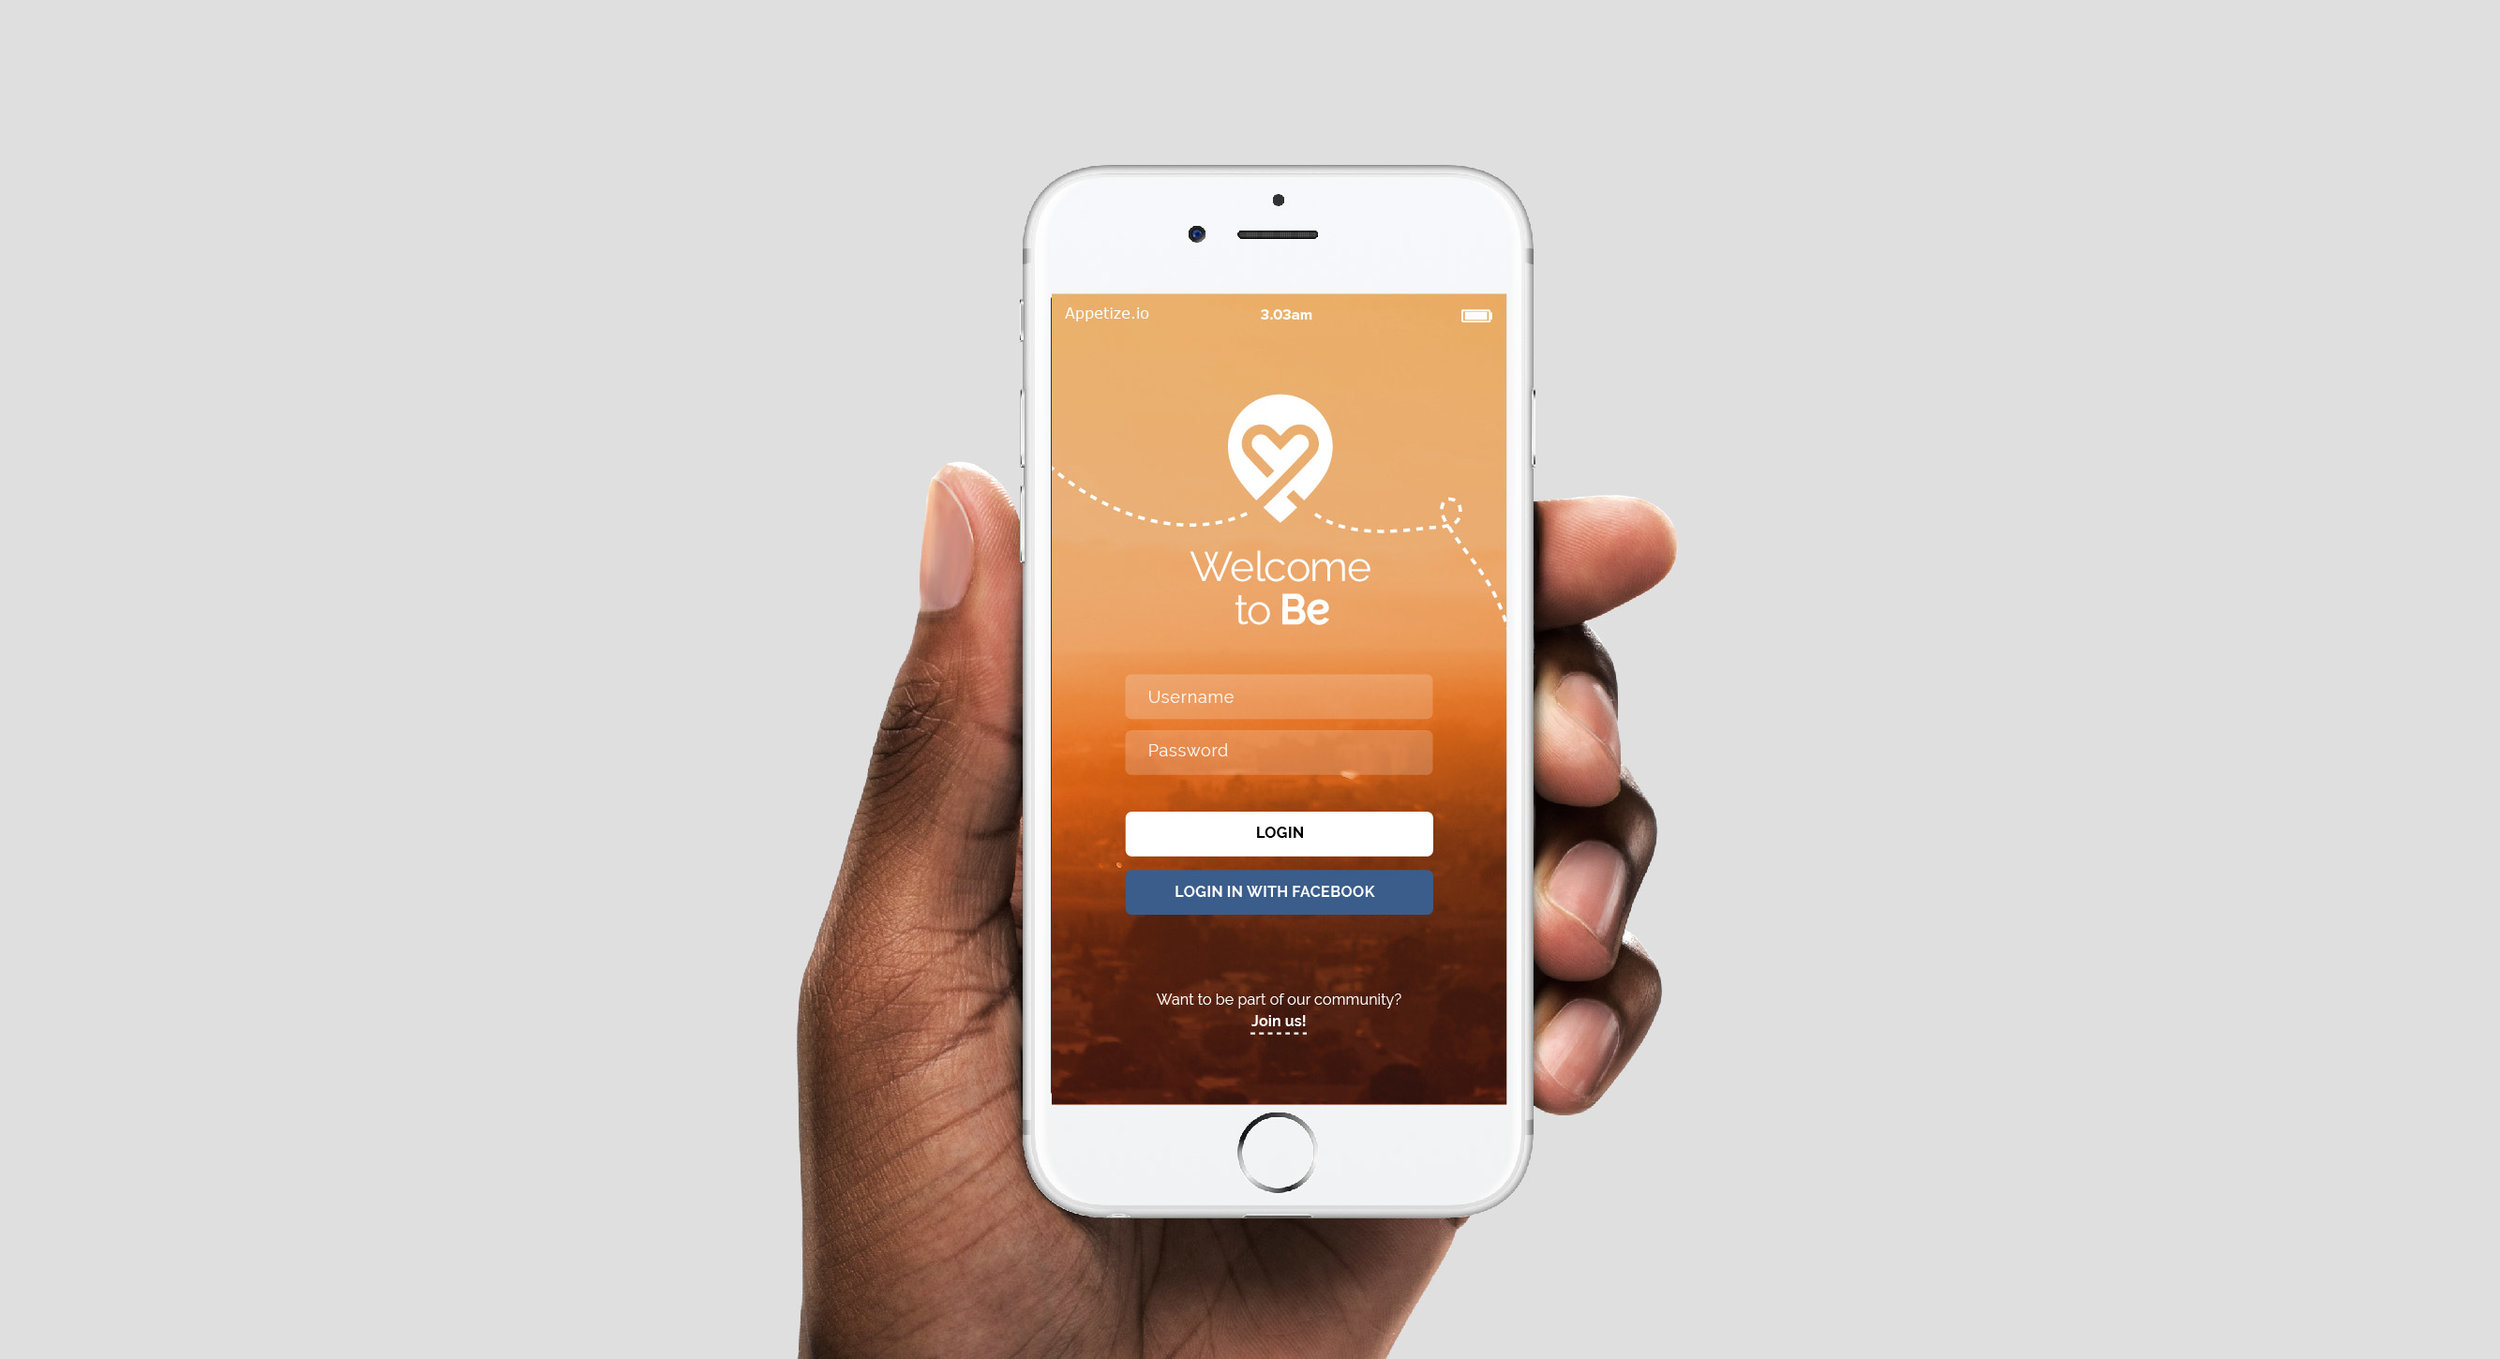 A beta-version of the BE mobile app is scheduled for public release in mid-2017.